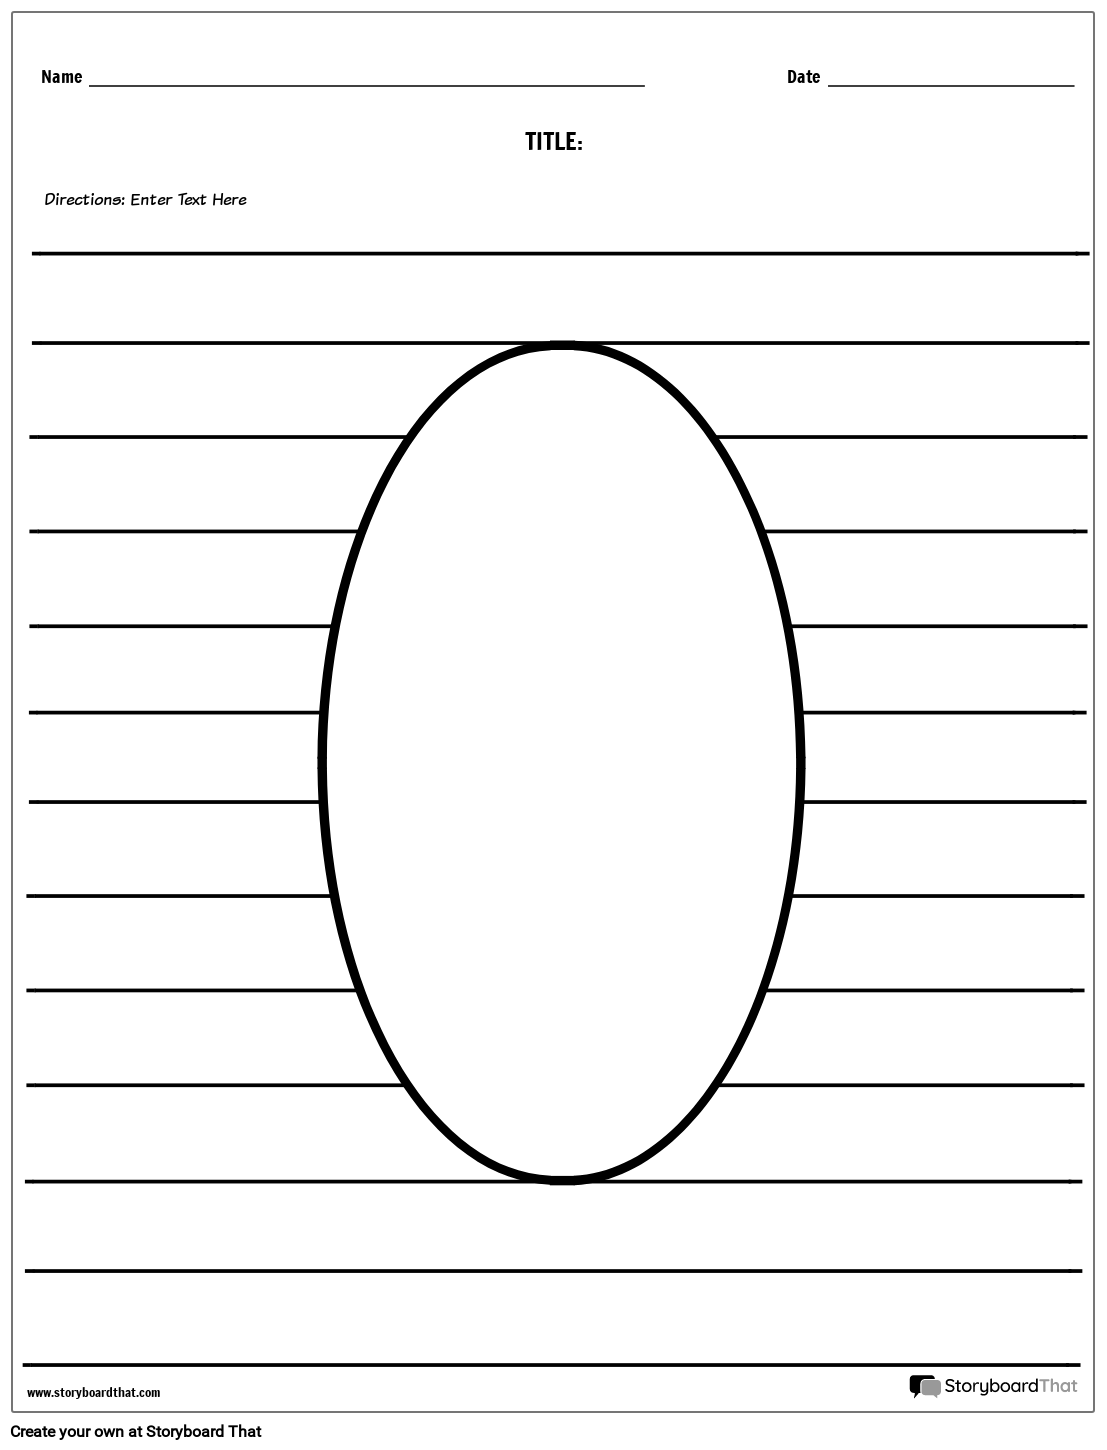 Oval Illustration